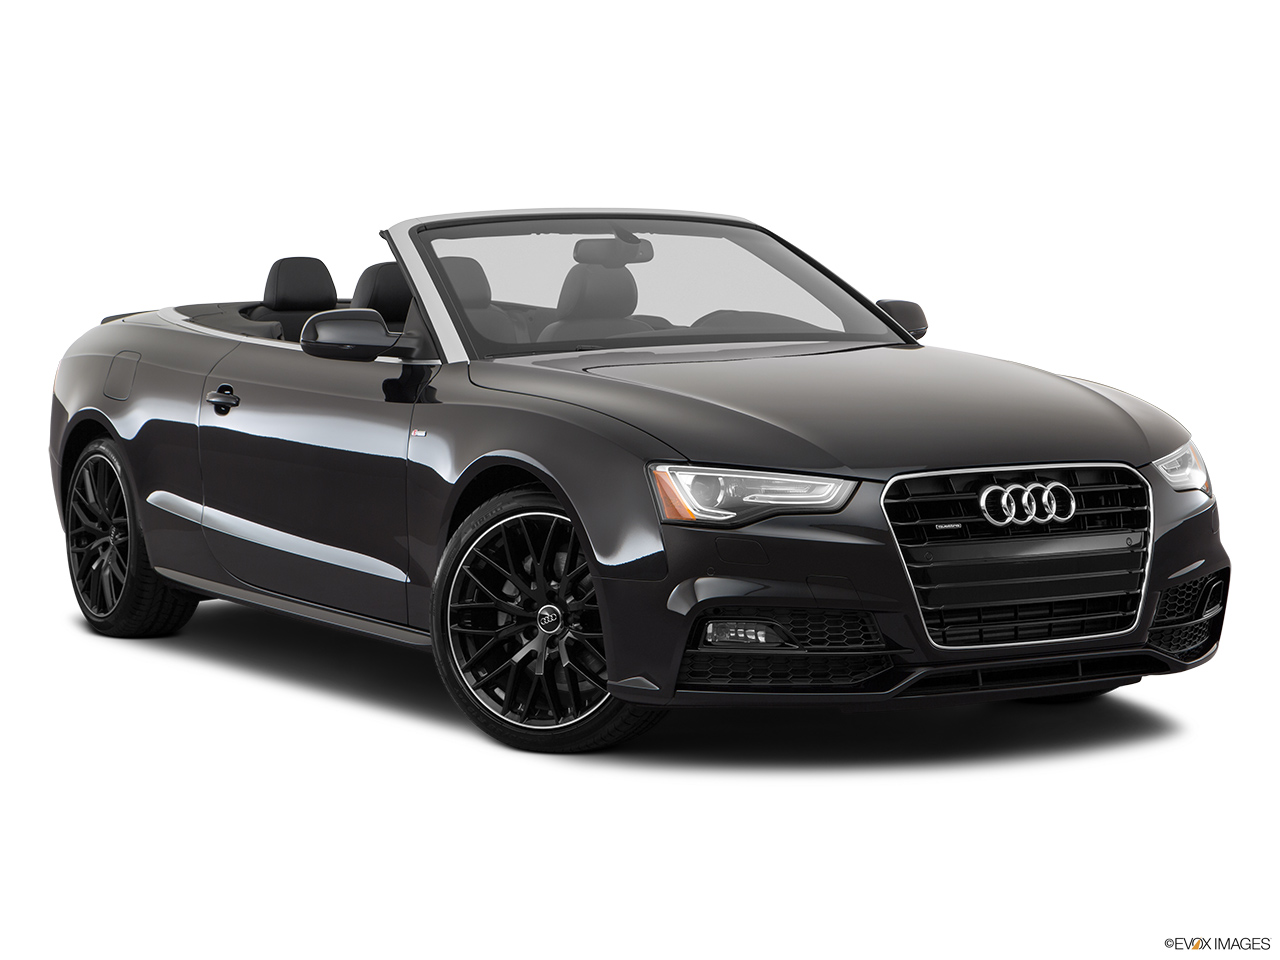 2017 Audi A5 Sport Cabriolet 2.0 TFSI Front passenger 3/4 w/ wheels turned.